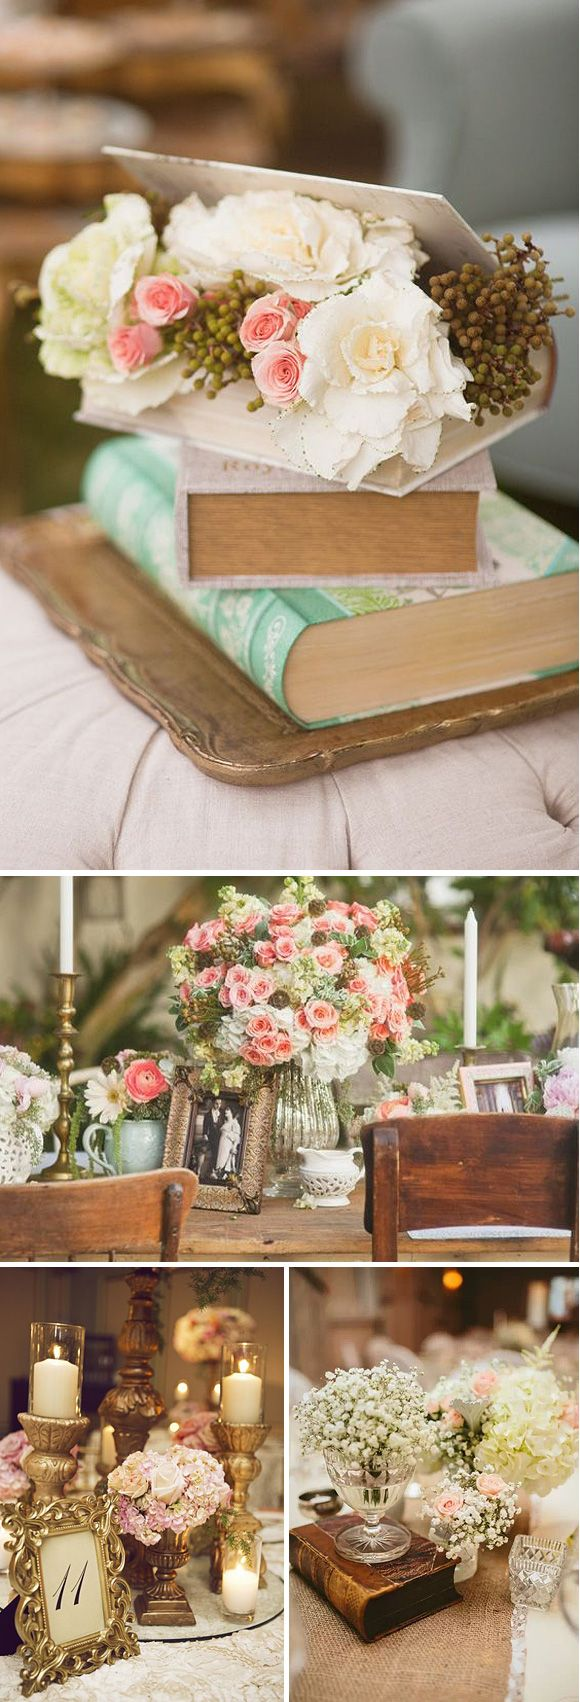 1000 images about wedding decor ideas on pinterest - Decoracion unas para boda ...